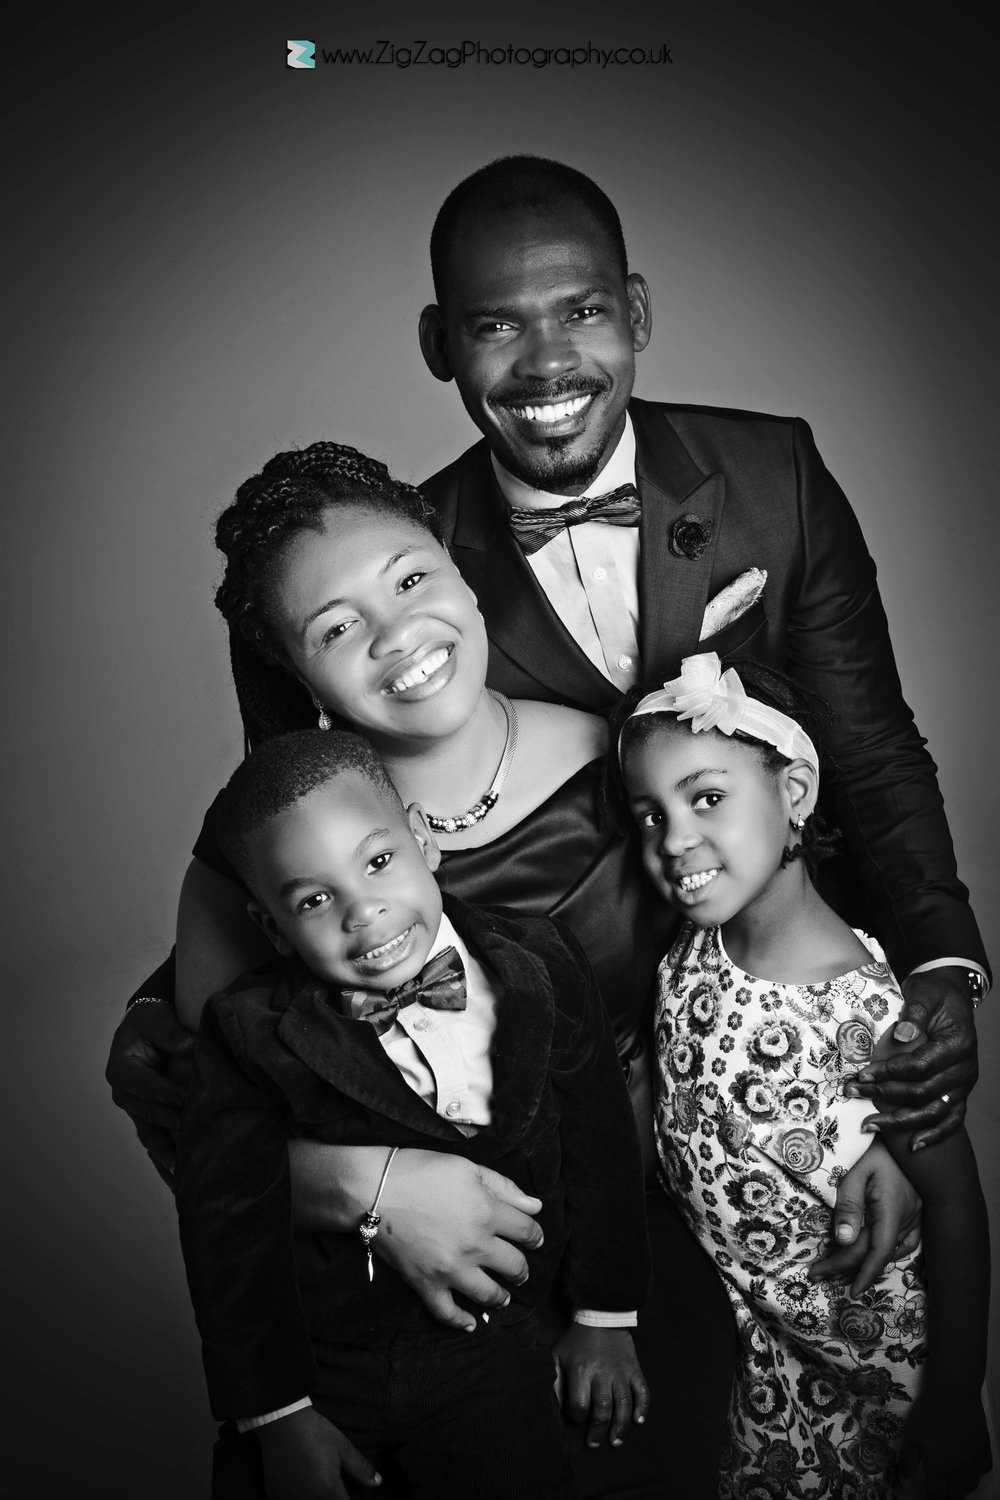 photography-leicester-photoshoot-session-zigzag-black-white-smart-suits-family-parents-mum-dad-children-kids-headband-boy-girl-bowtie.jpg